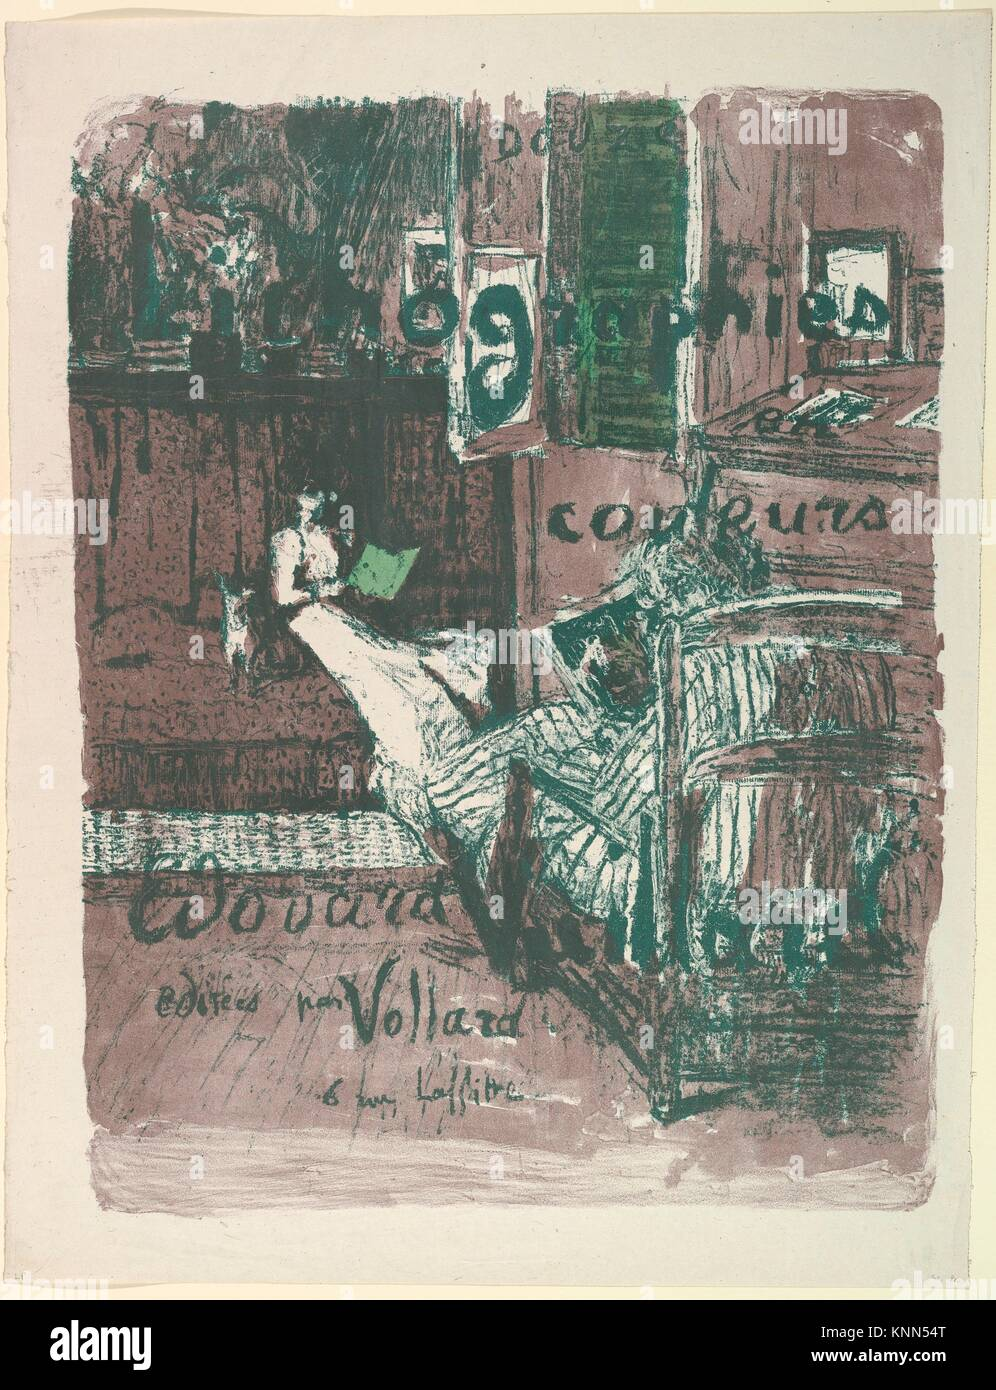 Cover for the album Landscapes and Interiors (Vollard Portfolio). Artist: Édouard Vuillard (French, Cuiseaux - Stock Image